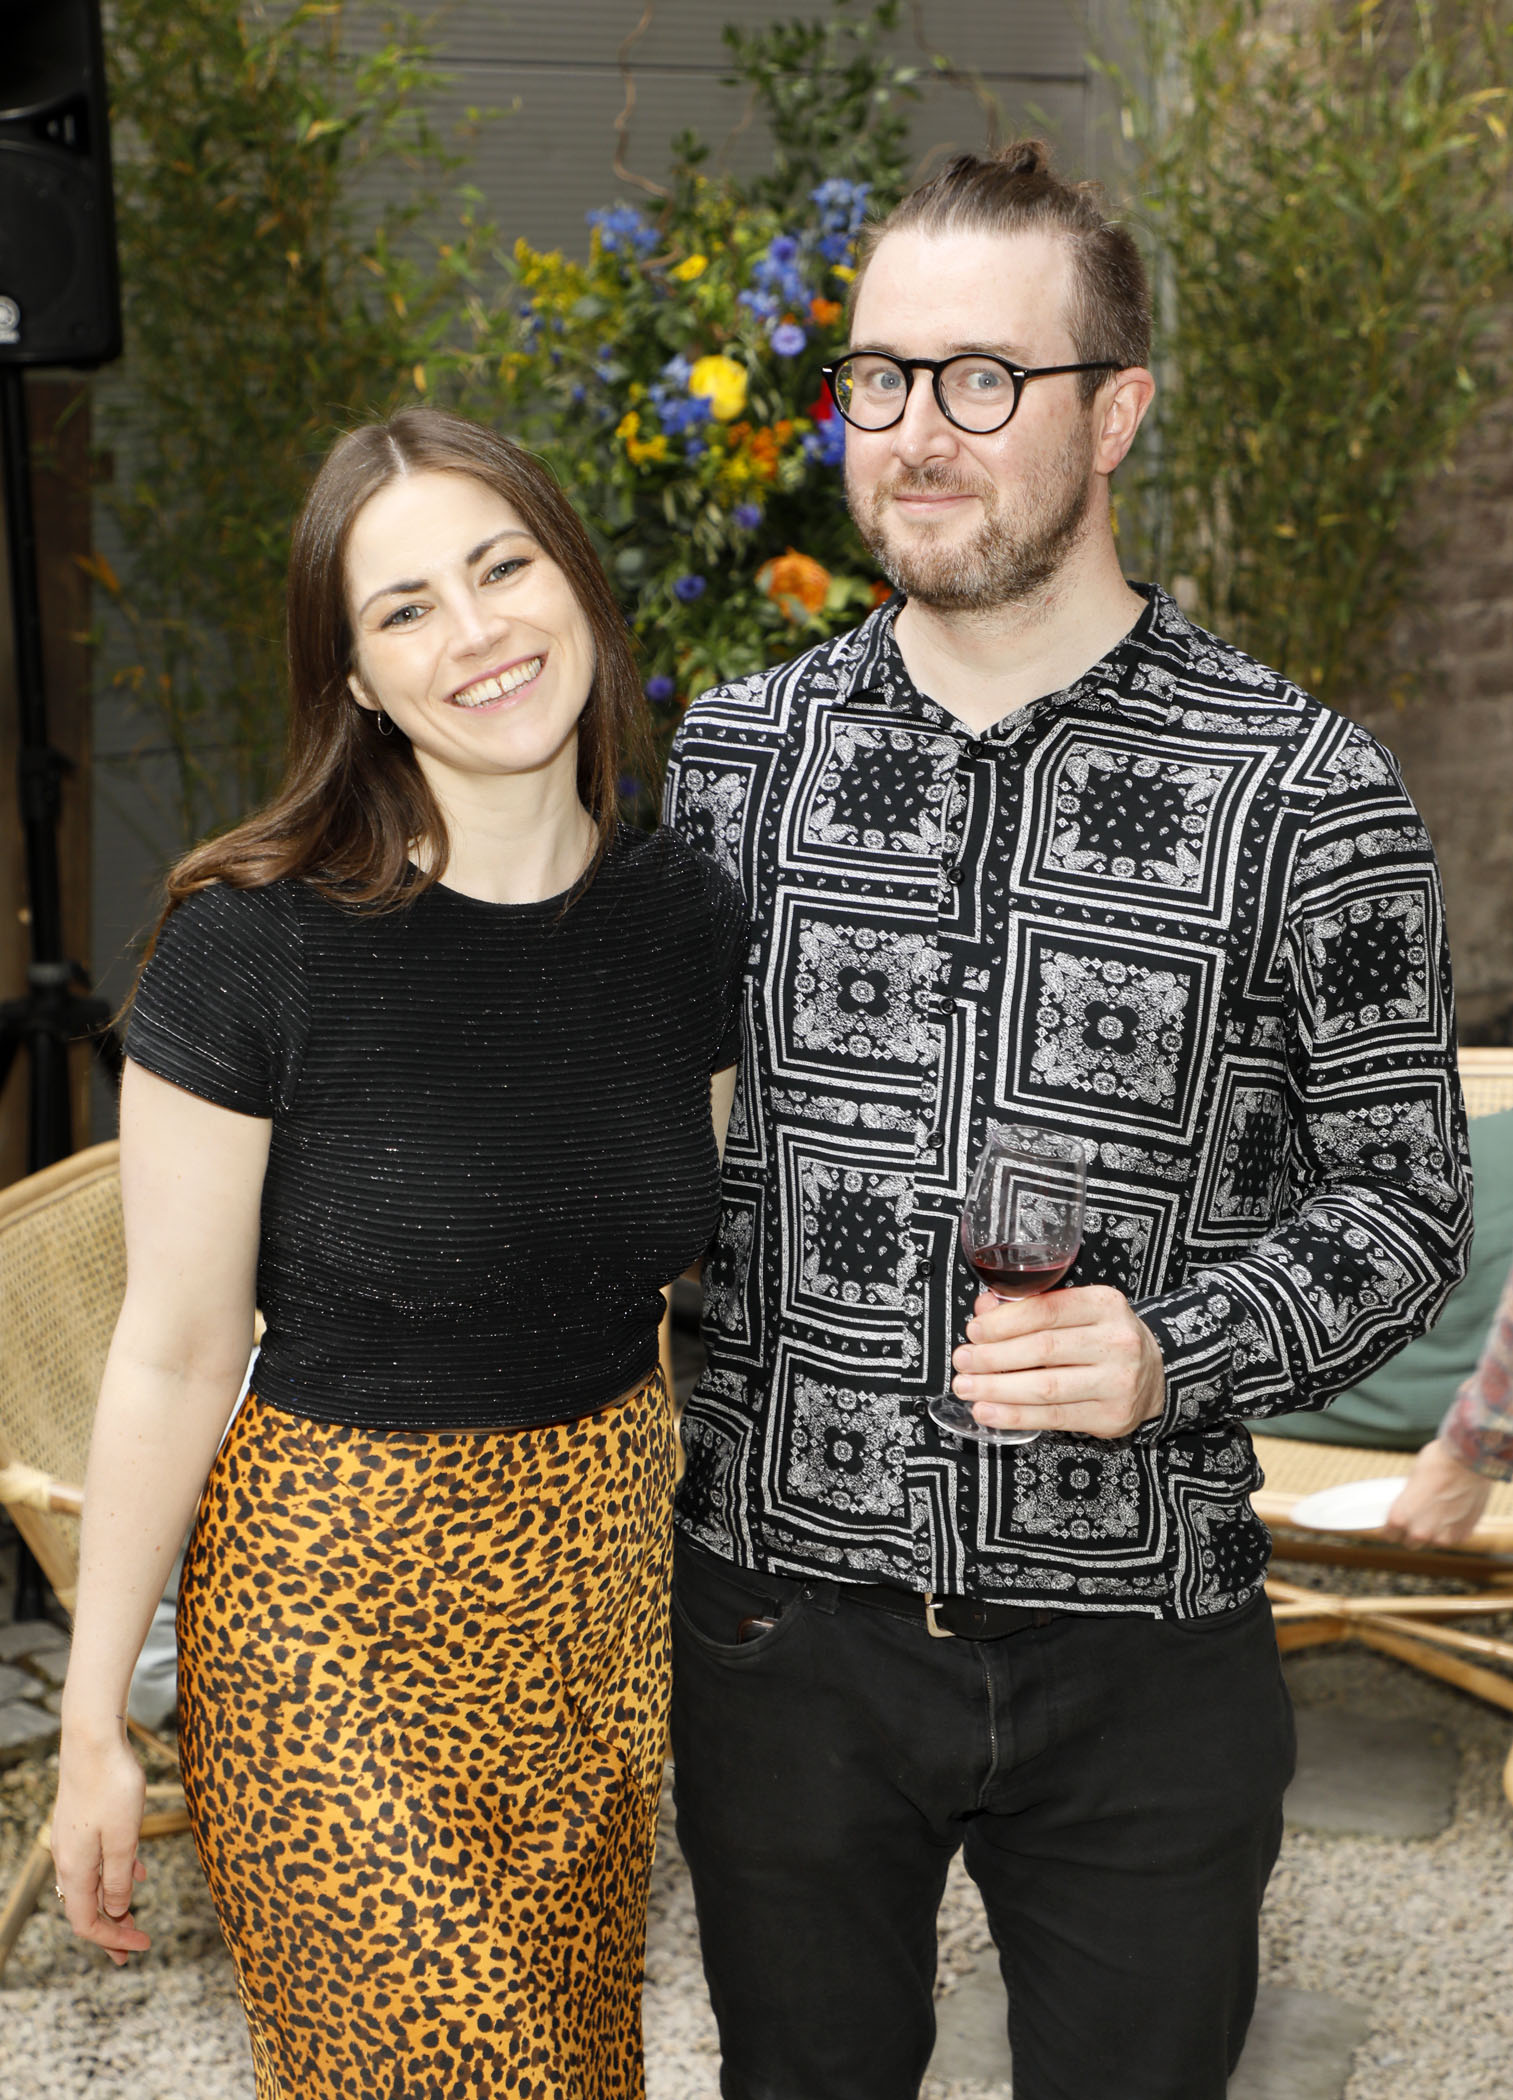 Paula Lyne and Joey Kavanagh at the Centra 'Wines We Love' event in Dublin. Photo: Kieran Harnett